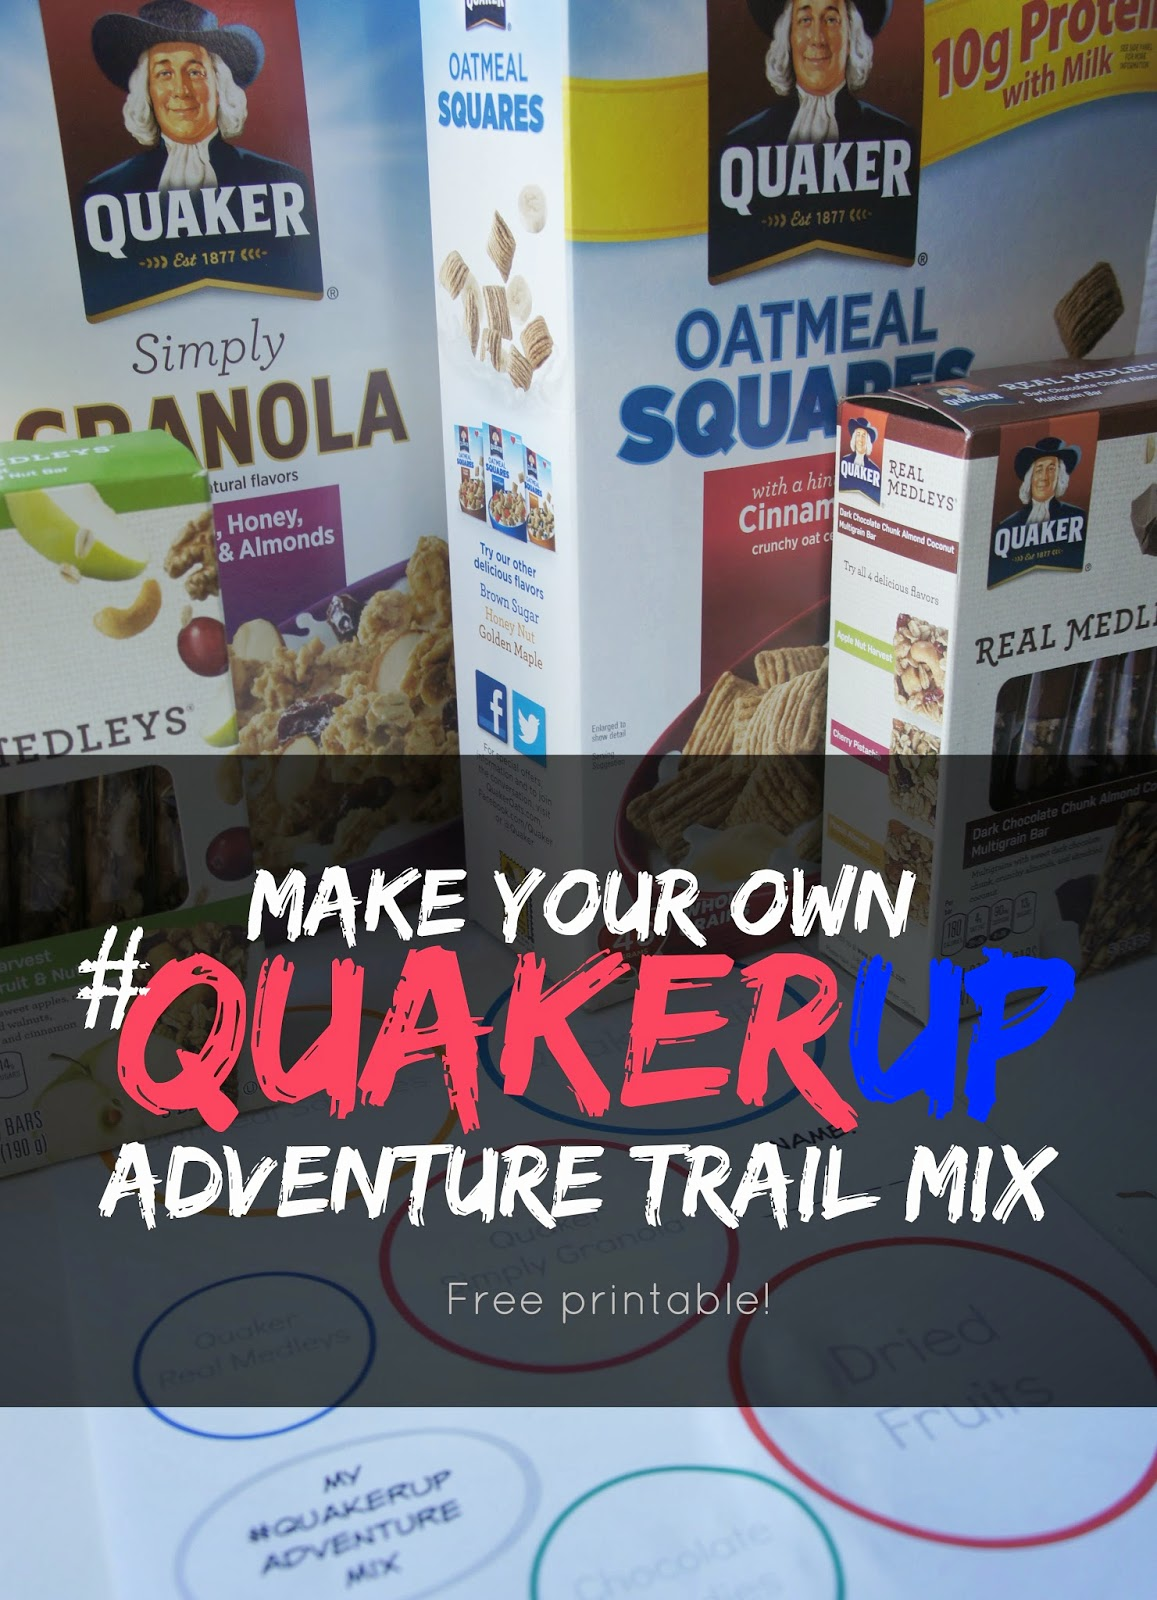 QuakerUp trail mix made with Quaker Life Cereal, Squares, Granola and Real Medleys Bars